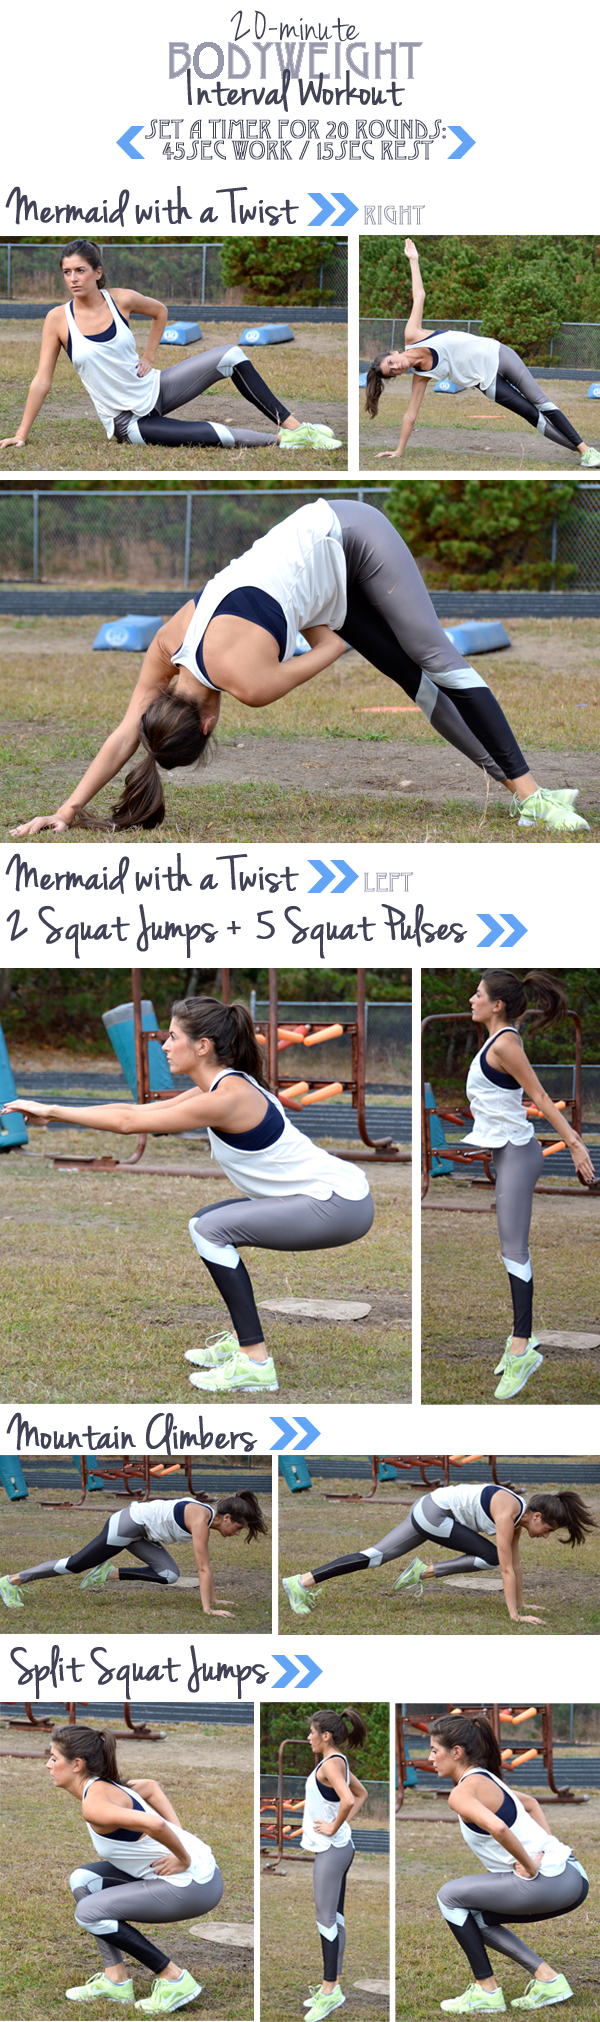 20-Minute Bodyweight Interval Workout